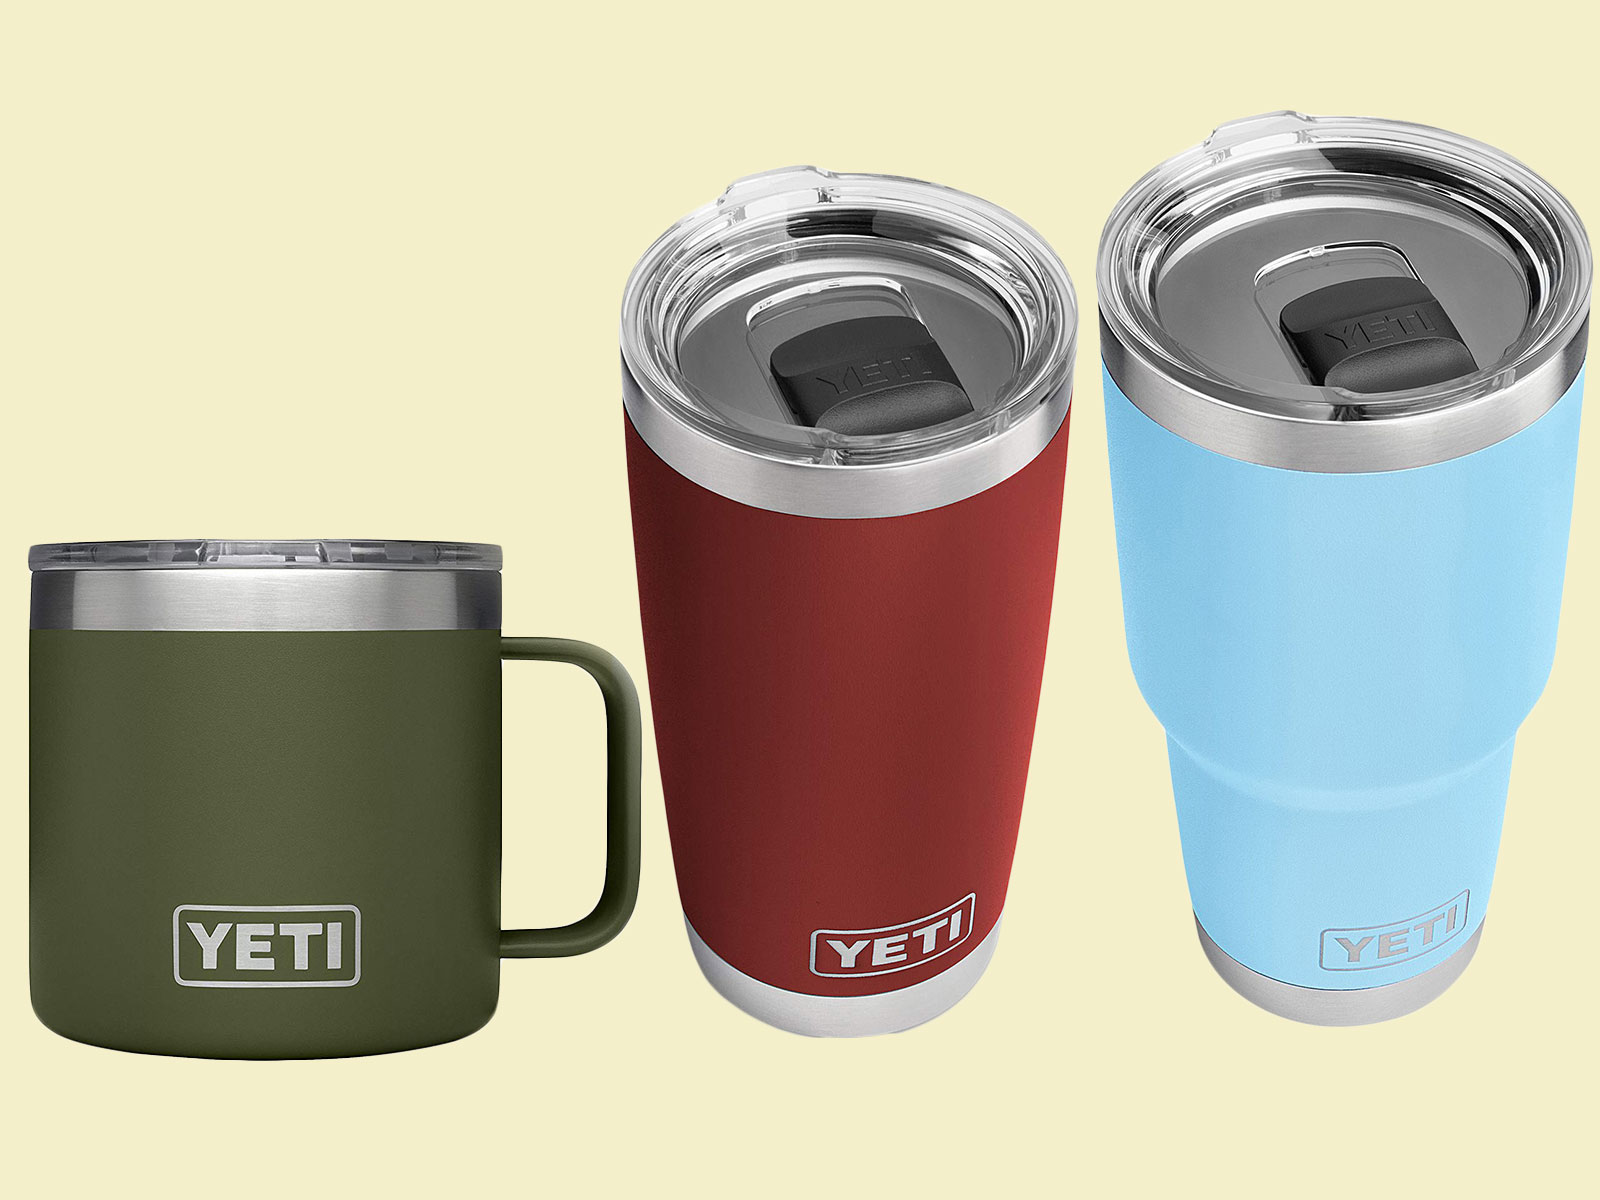 Yeti Coffee Mugs